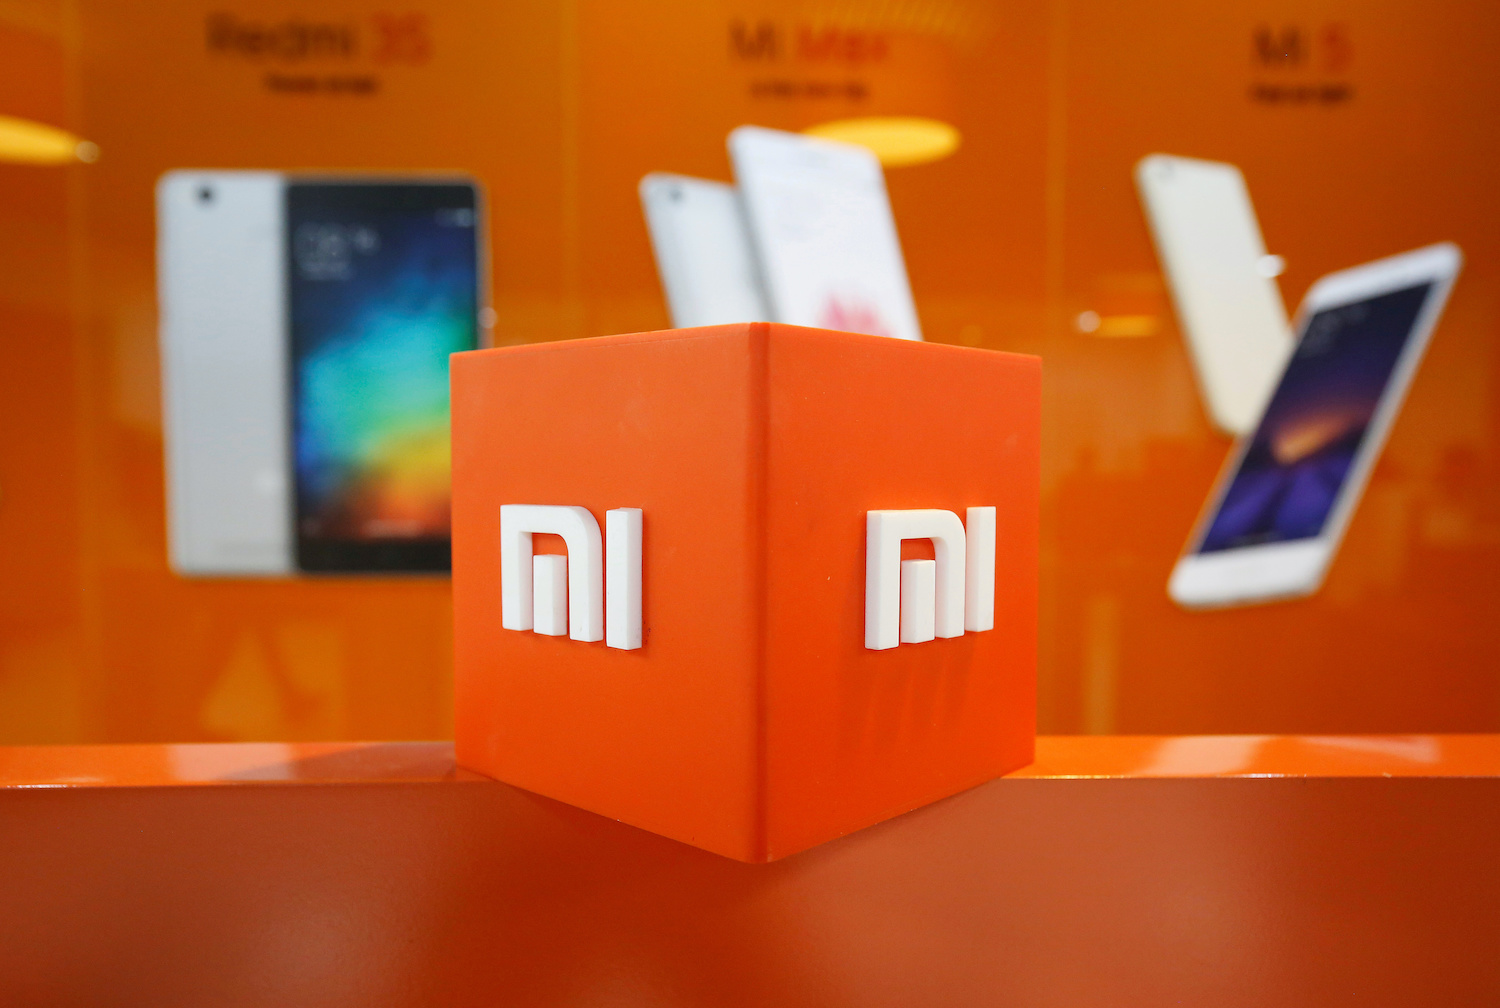 Blacklisted Chinese firms eye lawsuits after Xiaomi win against Trump ban